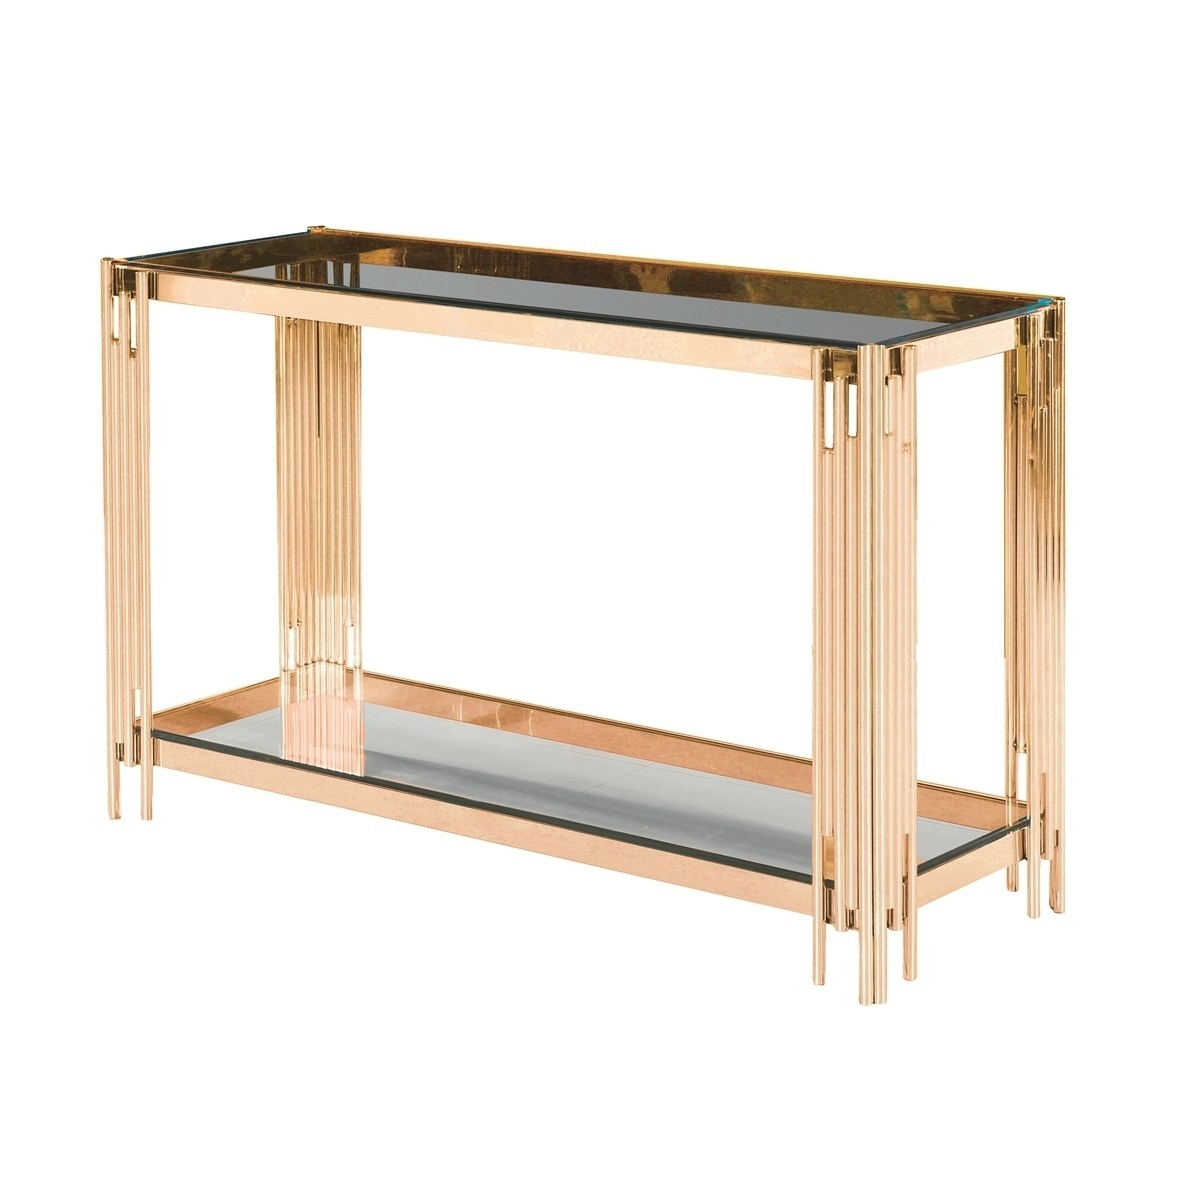 sagebrook home stainless steel glass console table gold stnlesssteel inches accent free shipping today circular patio cover round sliding barn door for dining room funky end